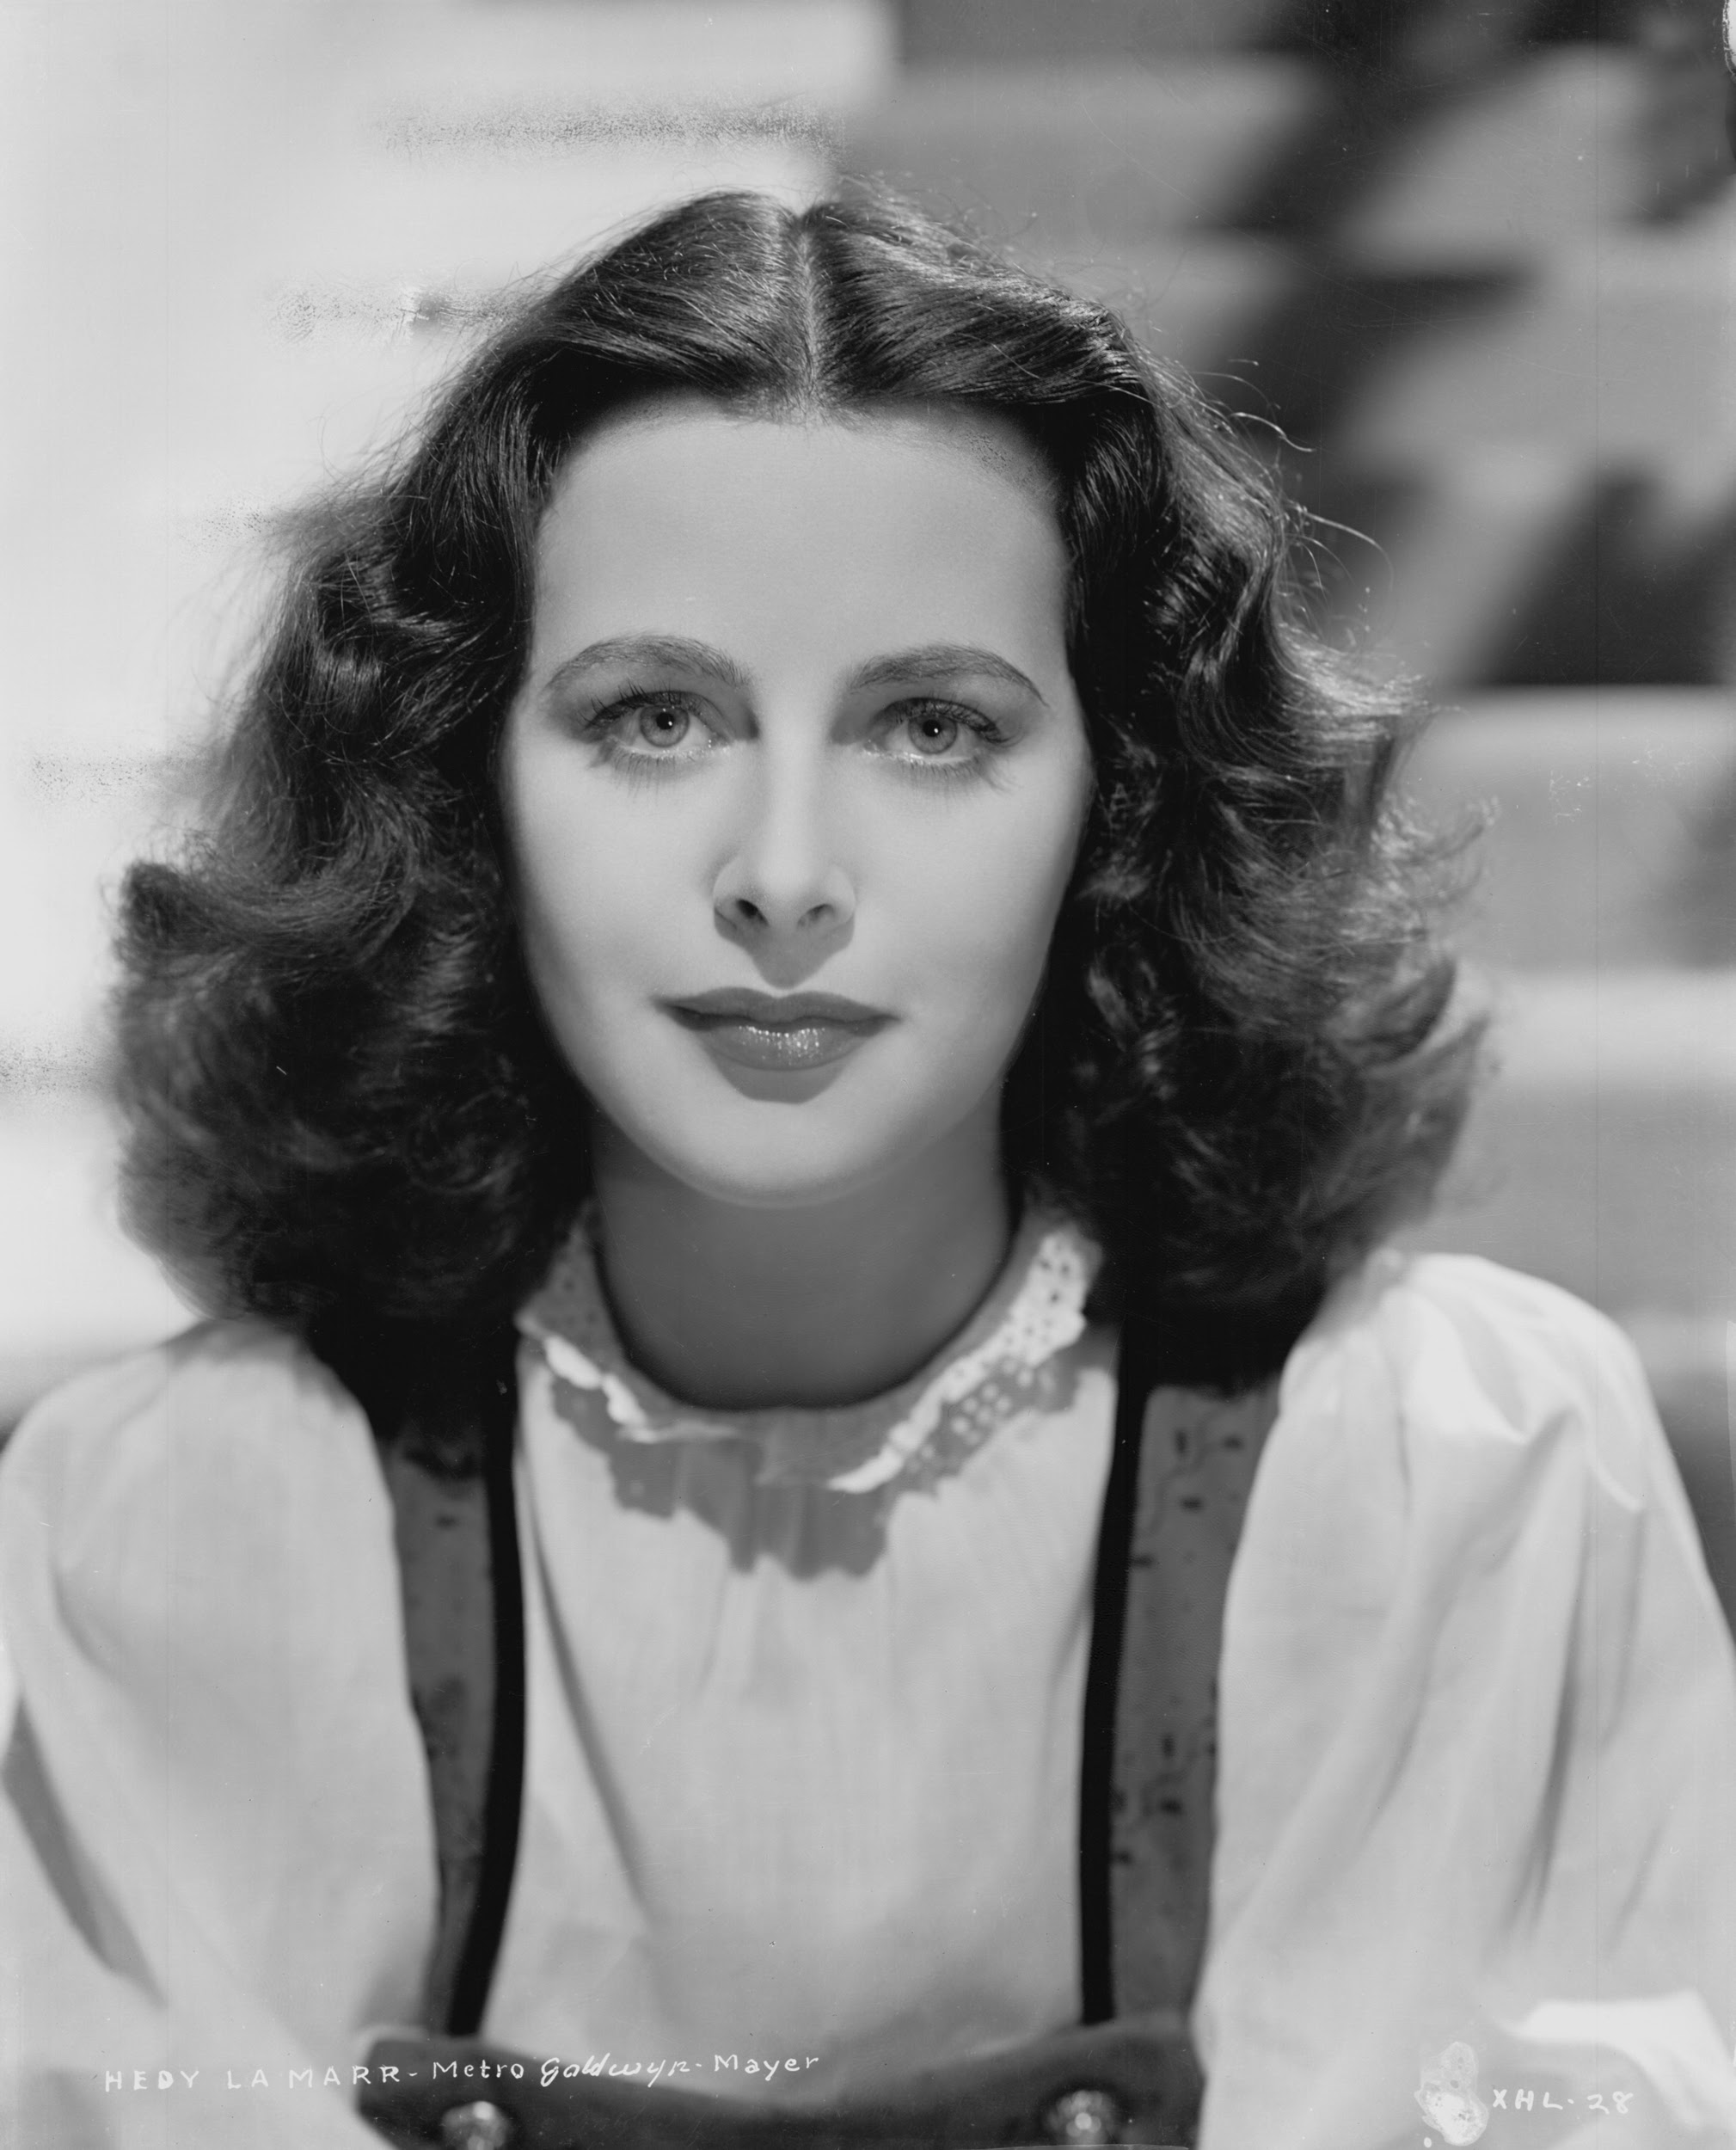 Google Honors Actress And Inventor Hedy Lamarr With